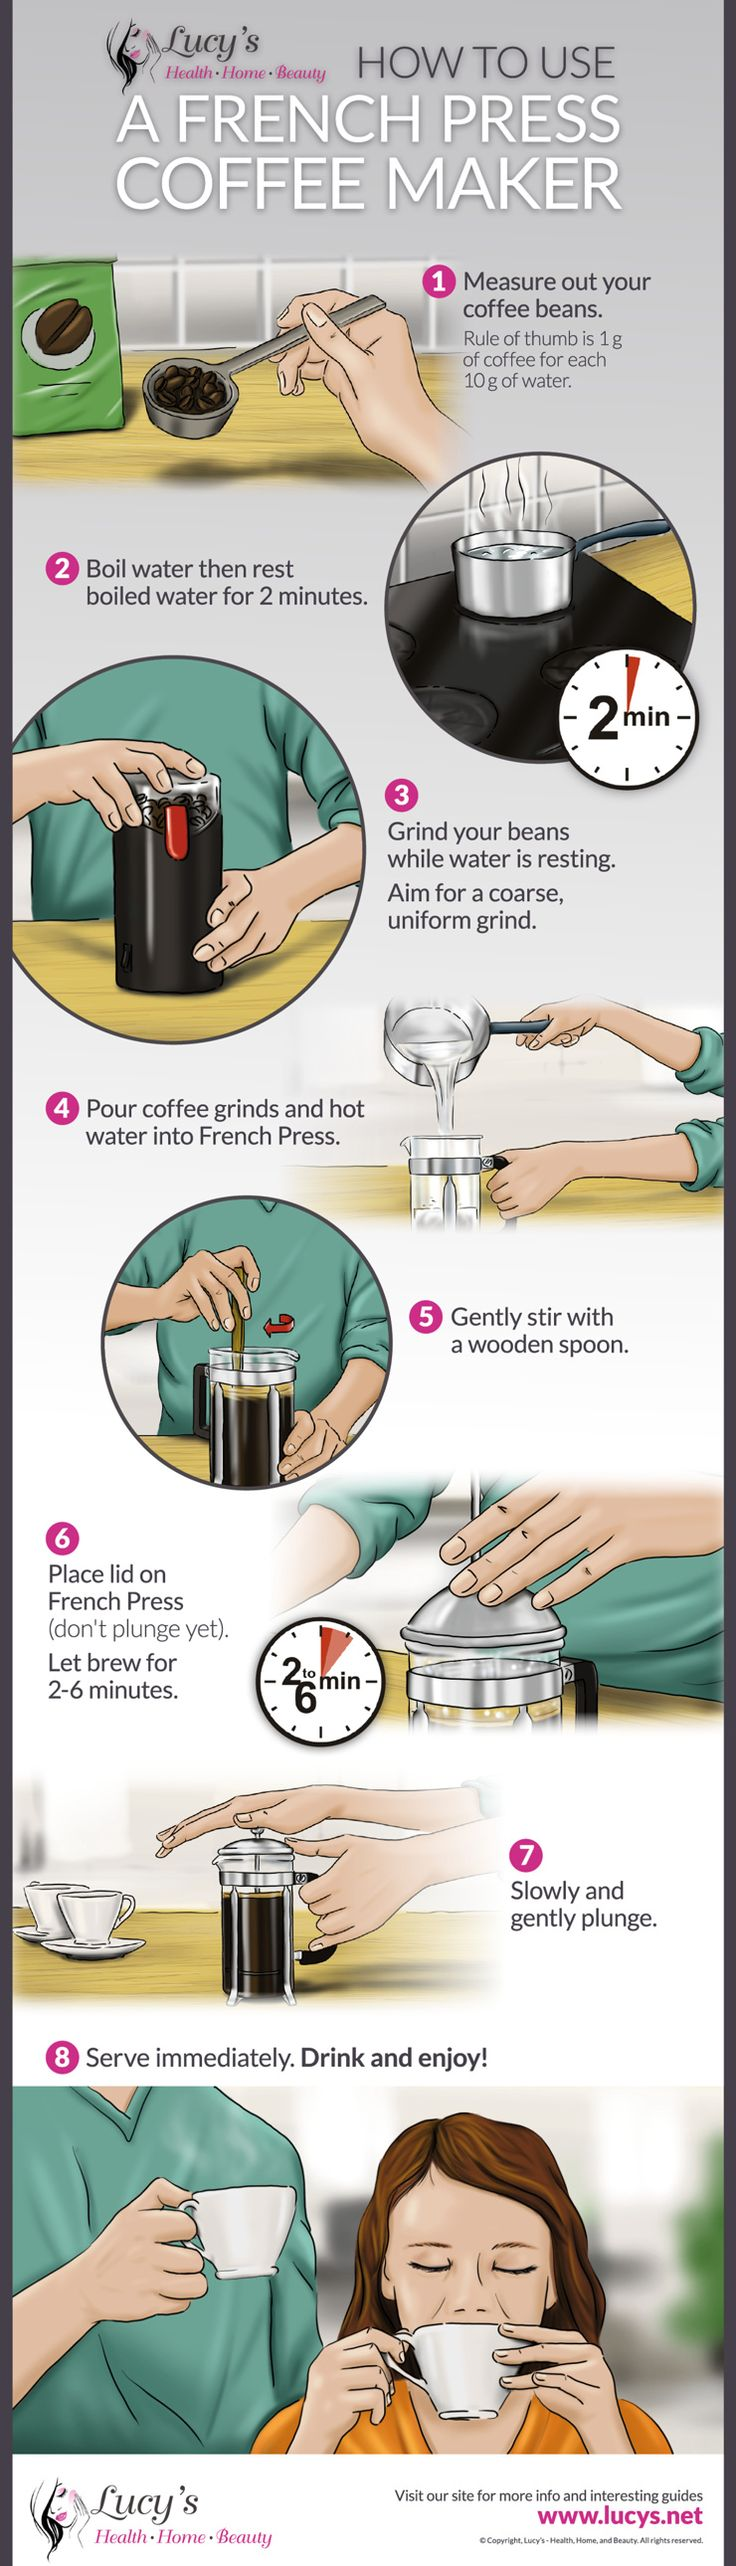 Learn how to plunge like a pro and make the perfect French Press Coffee. We have step by step instructions to guide you on how to use your French Press Coffee Maker to perfection. Visit: https://www.lucys.net/best-french-press-coffee-maker-reviews/